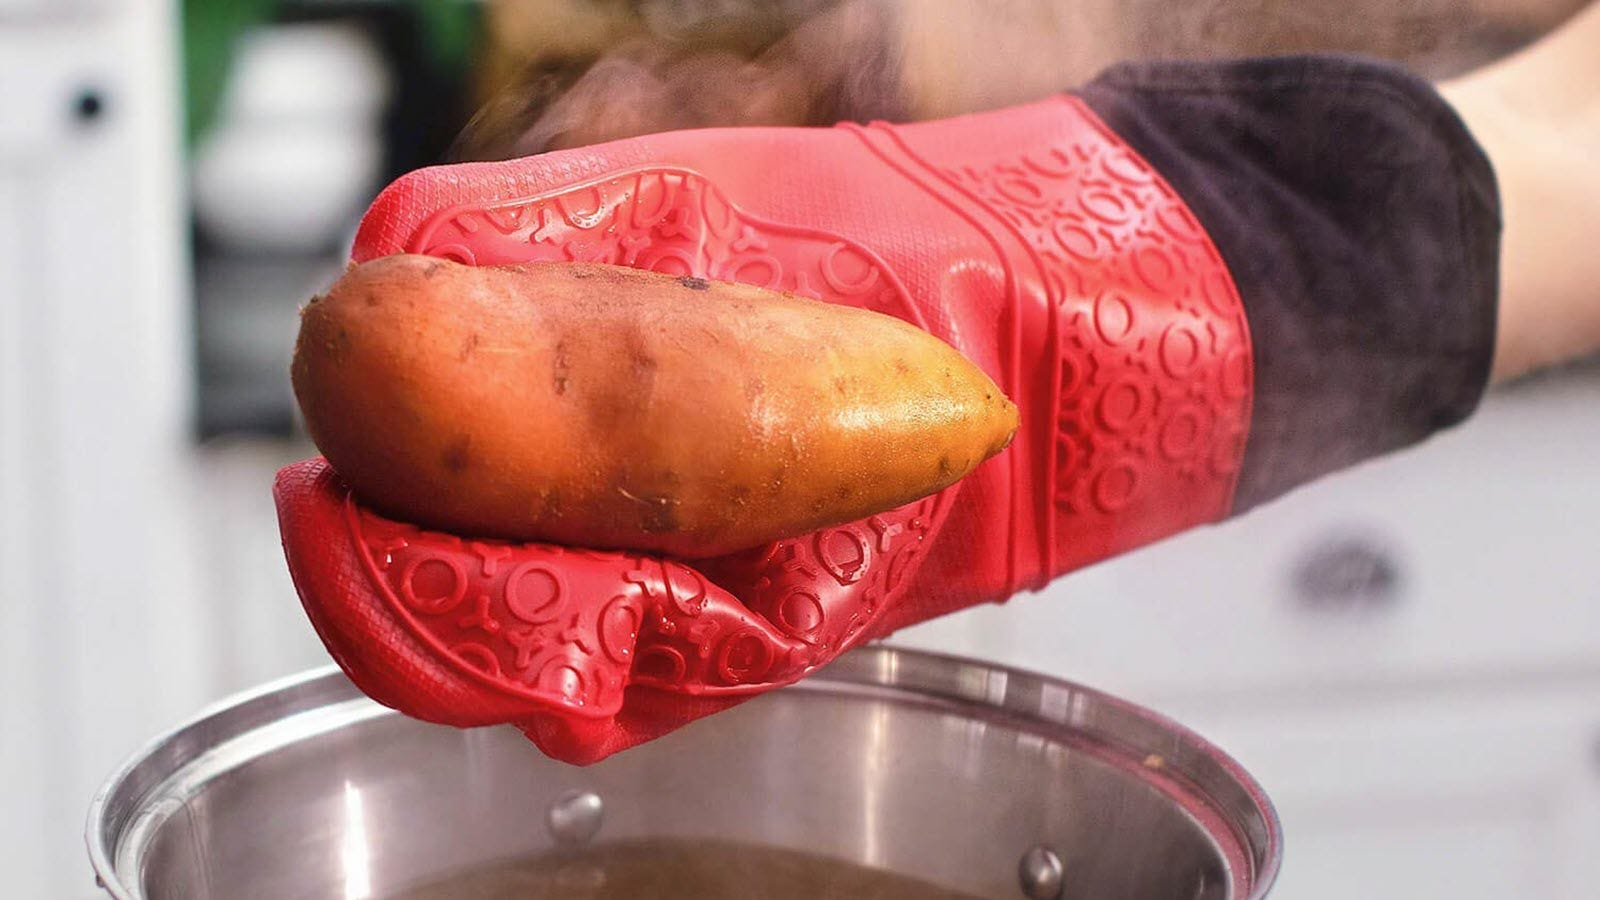 A red mitted hand lifting a yam out of a steaming pot.